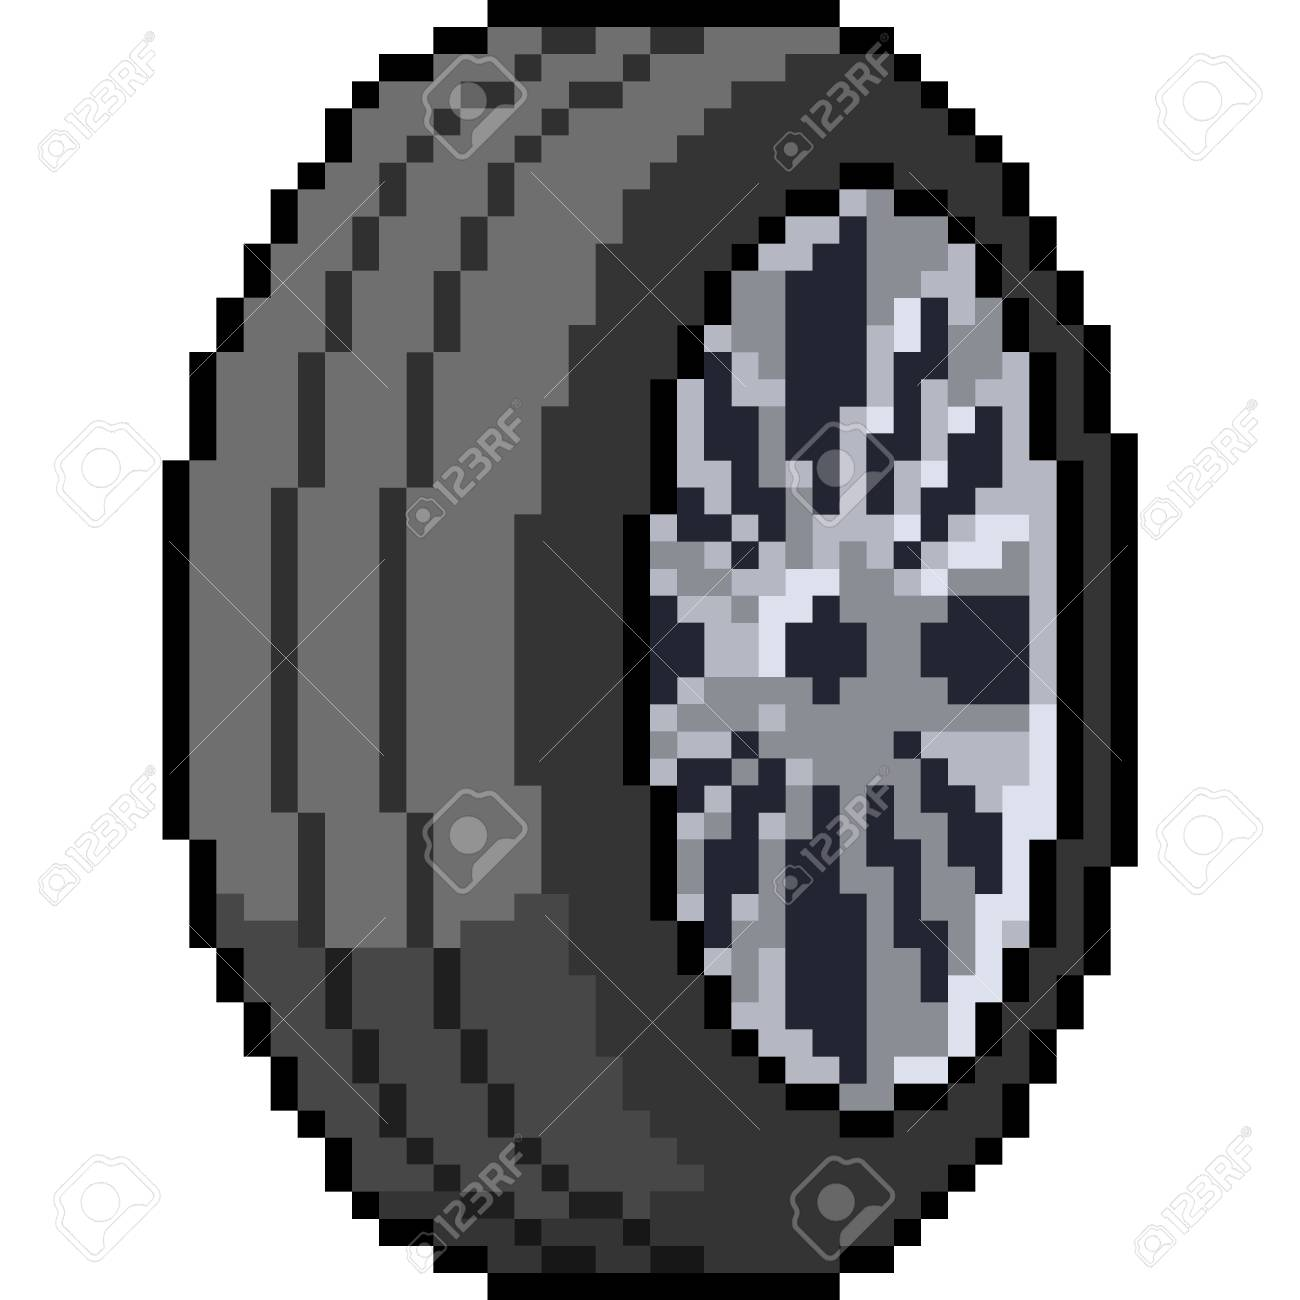 Vector Pixel Art Car Wheel Isolated Cartoon Royalty Free Cliparts Vectors And Stock Illustration Image 107204881